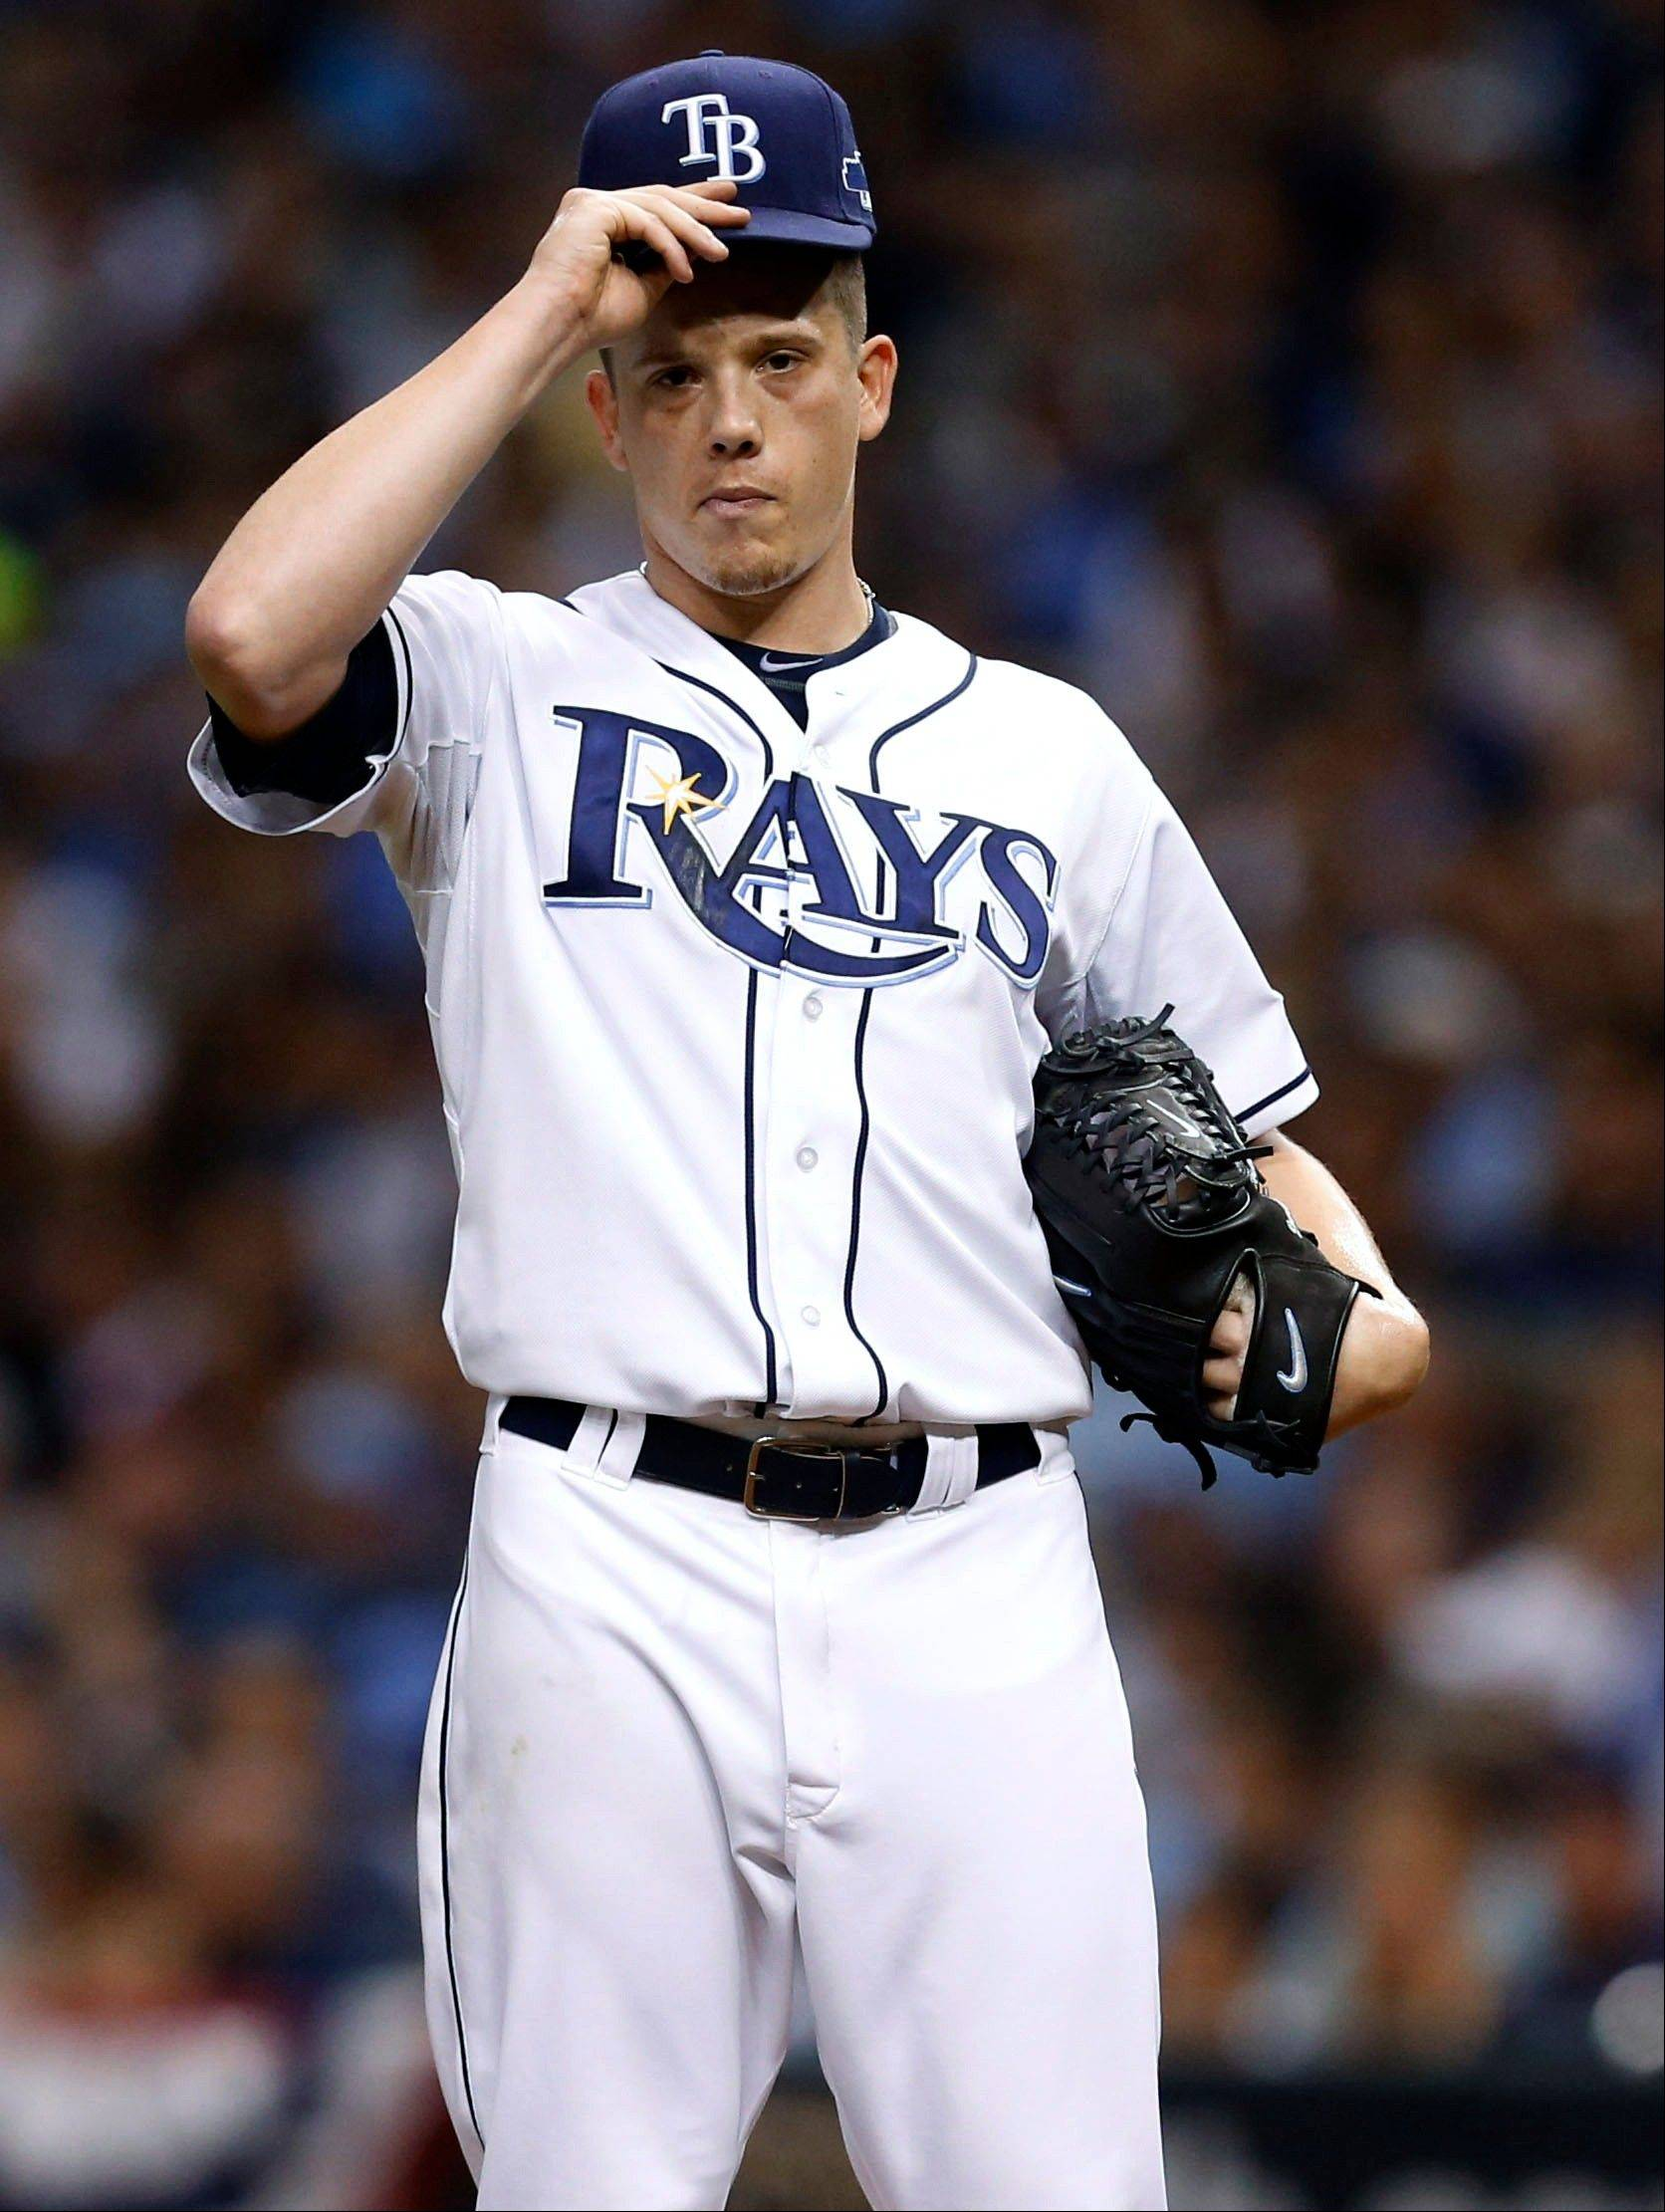 Rays starting pitcher Jeremy Hellickson waits as manager Joe Maddon approaches the mound in the second inning in Game 4. Hellickson was replaced by pitcher Jamey Wright.